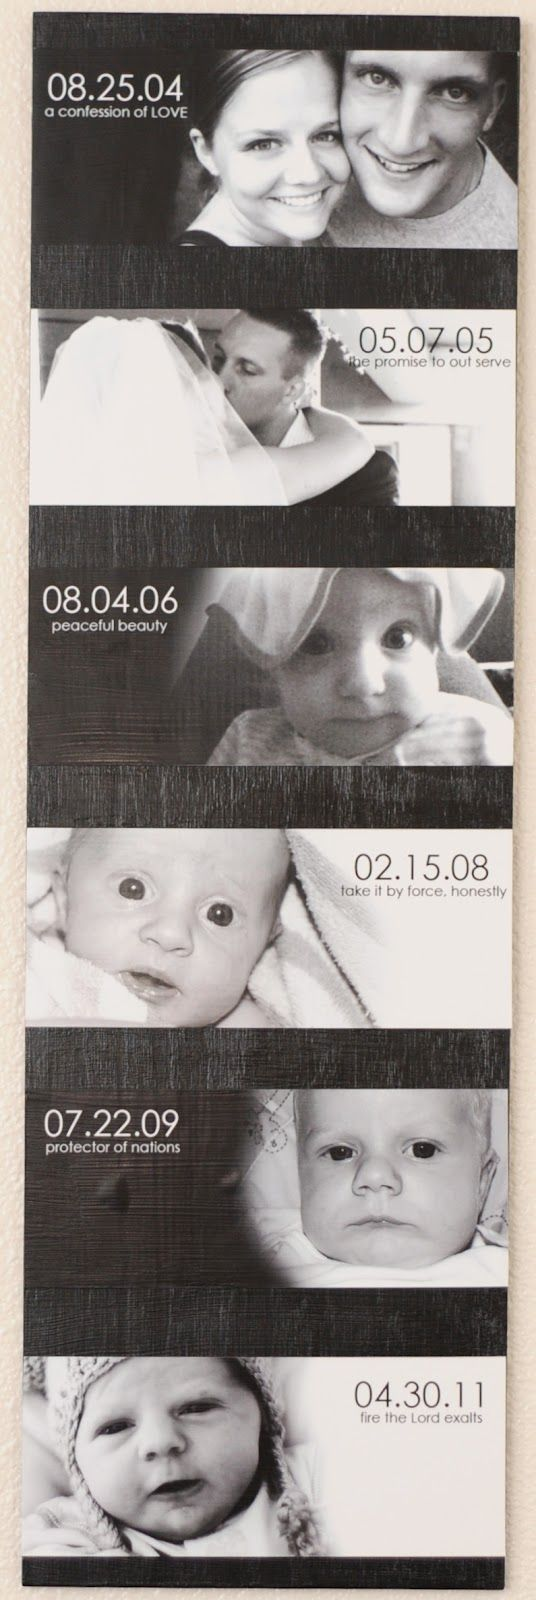 Most Important dates in life with photos - I love how they used the meaning of the kids' names in the pictures